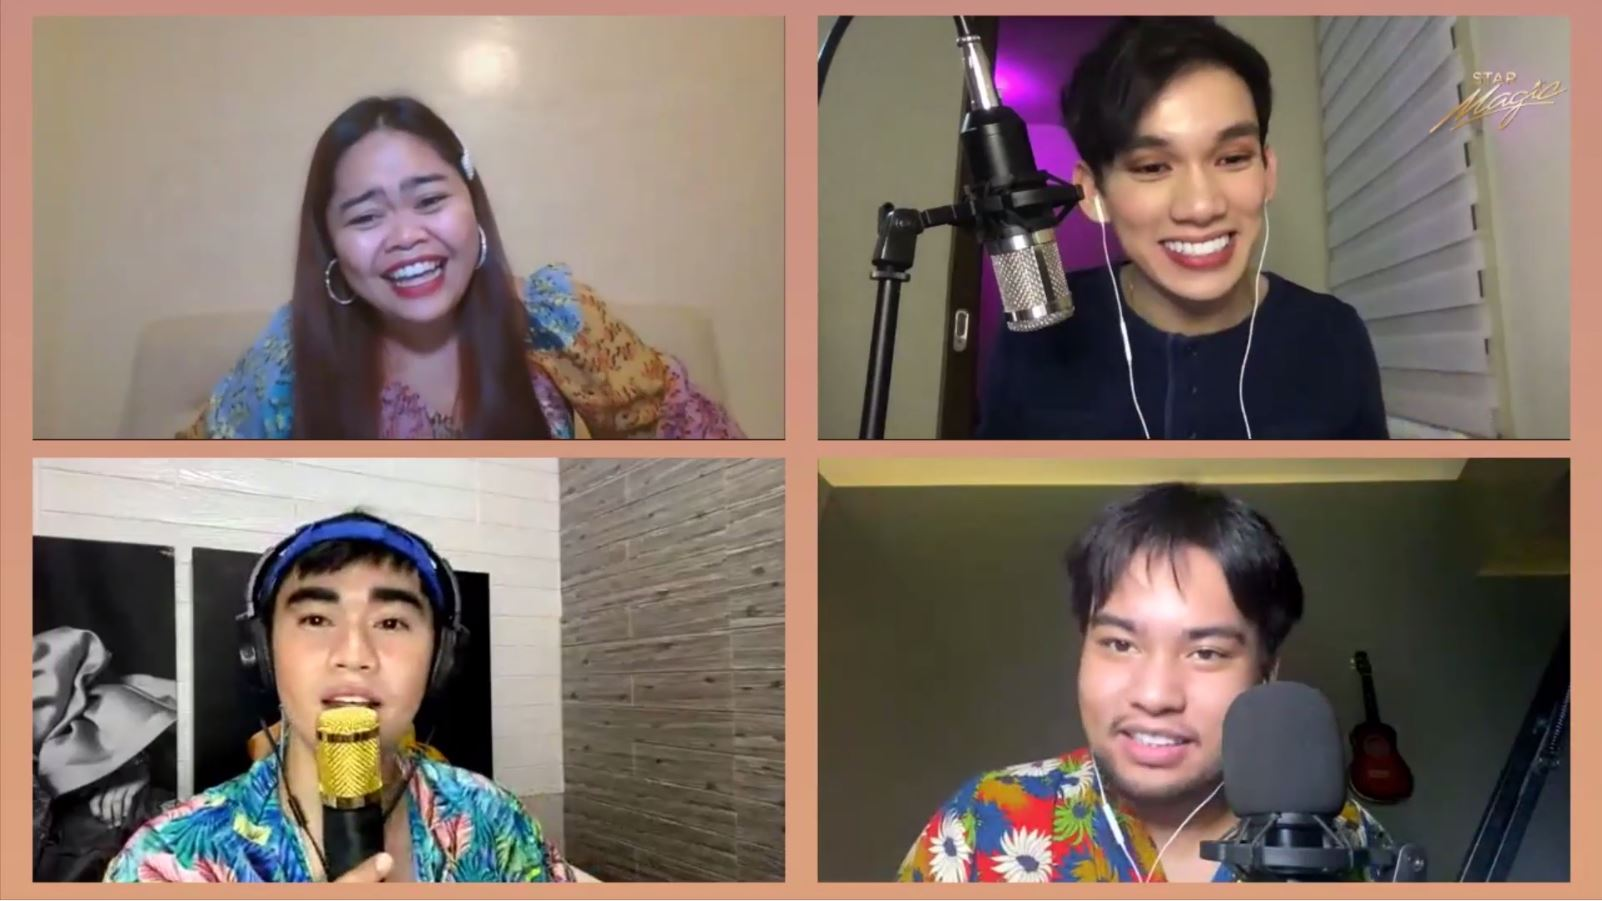 The talented iDolls spread passion and creativity | Star Magic Lounge